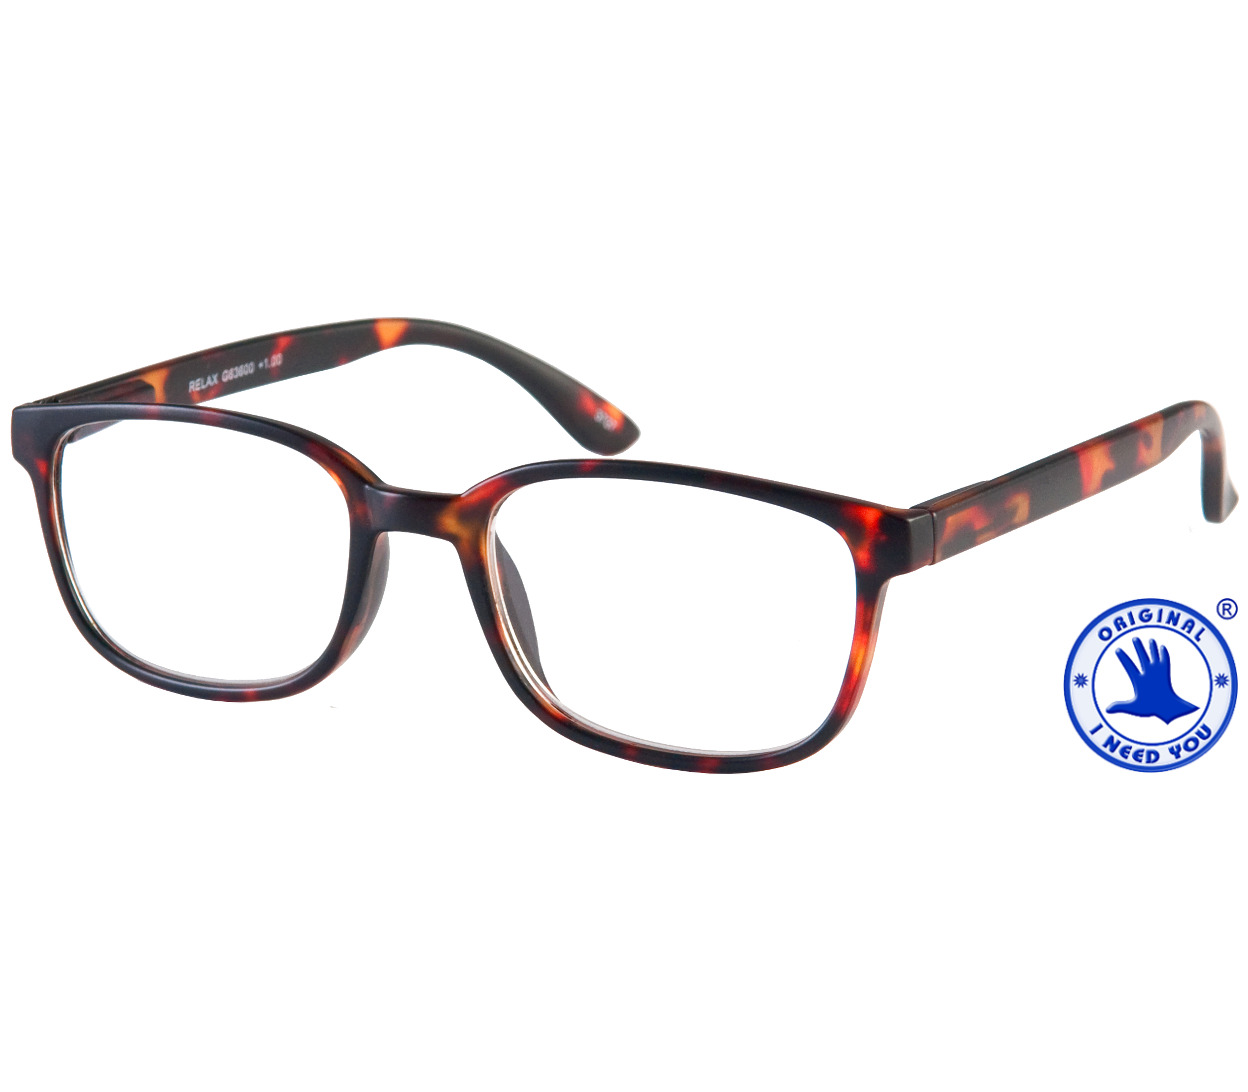 Main Image (Angle) - Relax (Tortoiseshell) Retro Reading Glasses